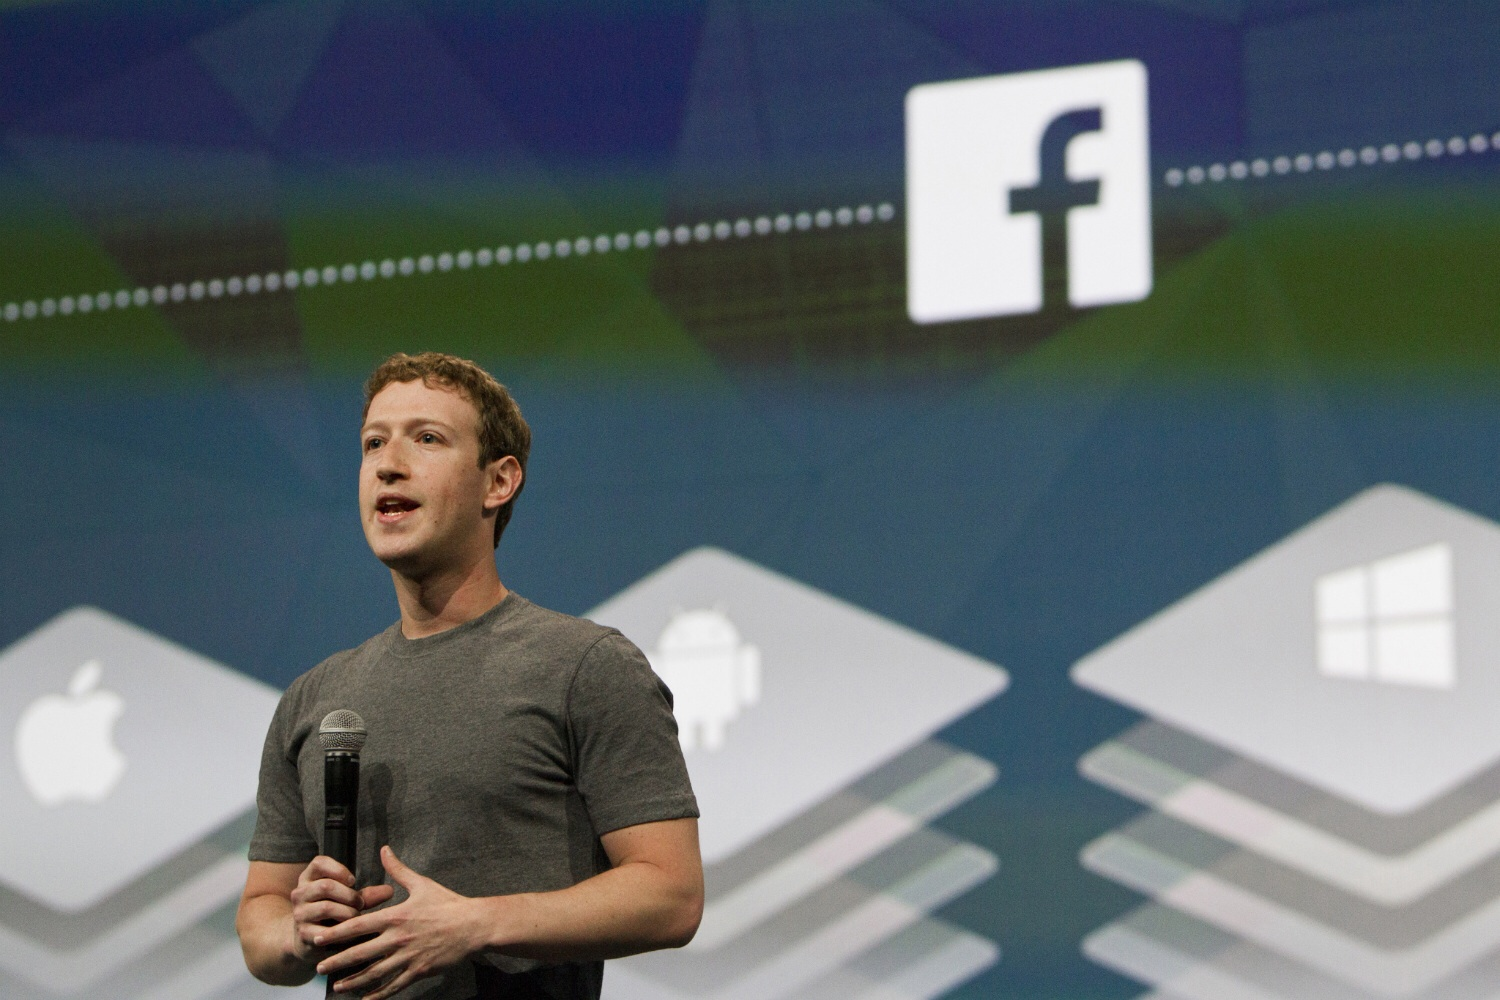 Facebook CEO Mark Zuckerberg compares the Facebook platform for mobile developers to iOS, Android and Windows Phone at the f8 conference in San Francisco on April 30, 2014